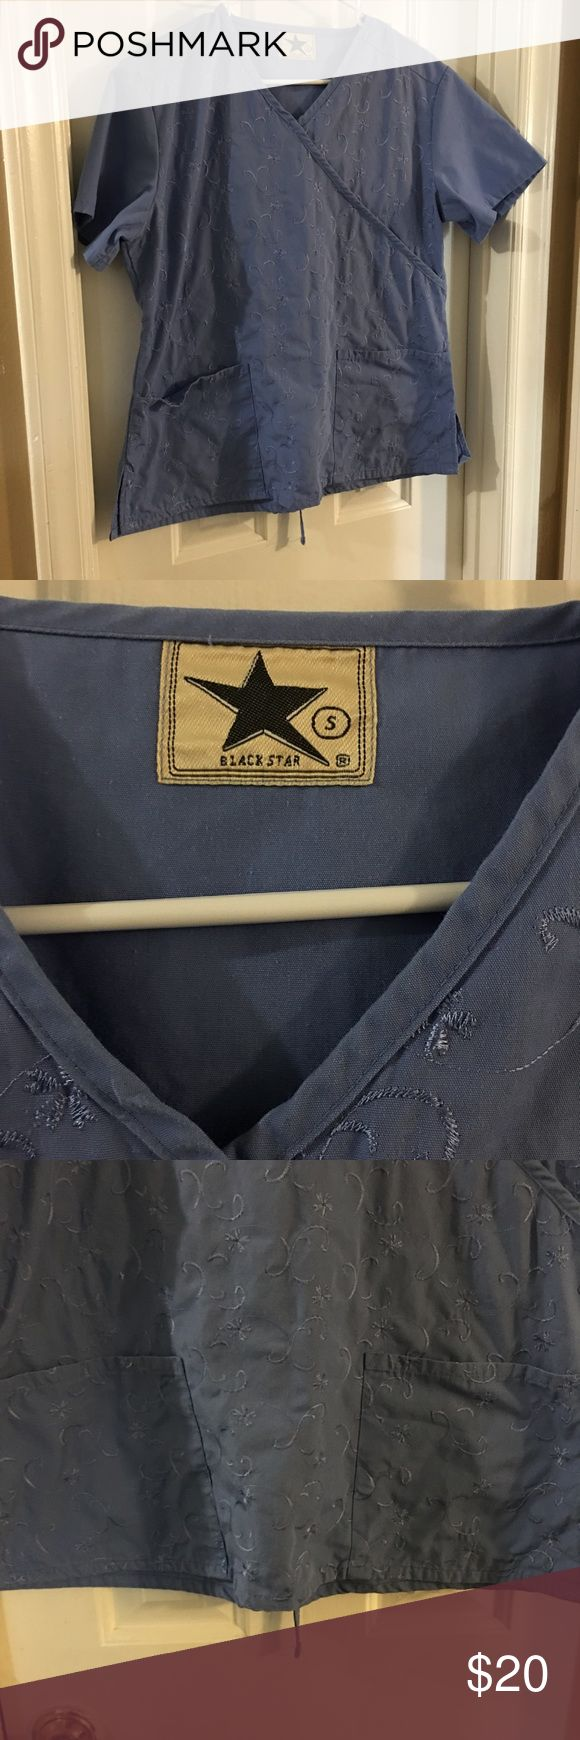 Black star scrubs set Black star scrub set in excellent condition top is a size small and bottoms are a size medium. Pants have a leg pocket back pocket in front pockets freshly washed today smoke free home.. bottoms are the same color as top black star Other